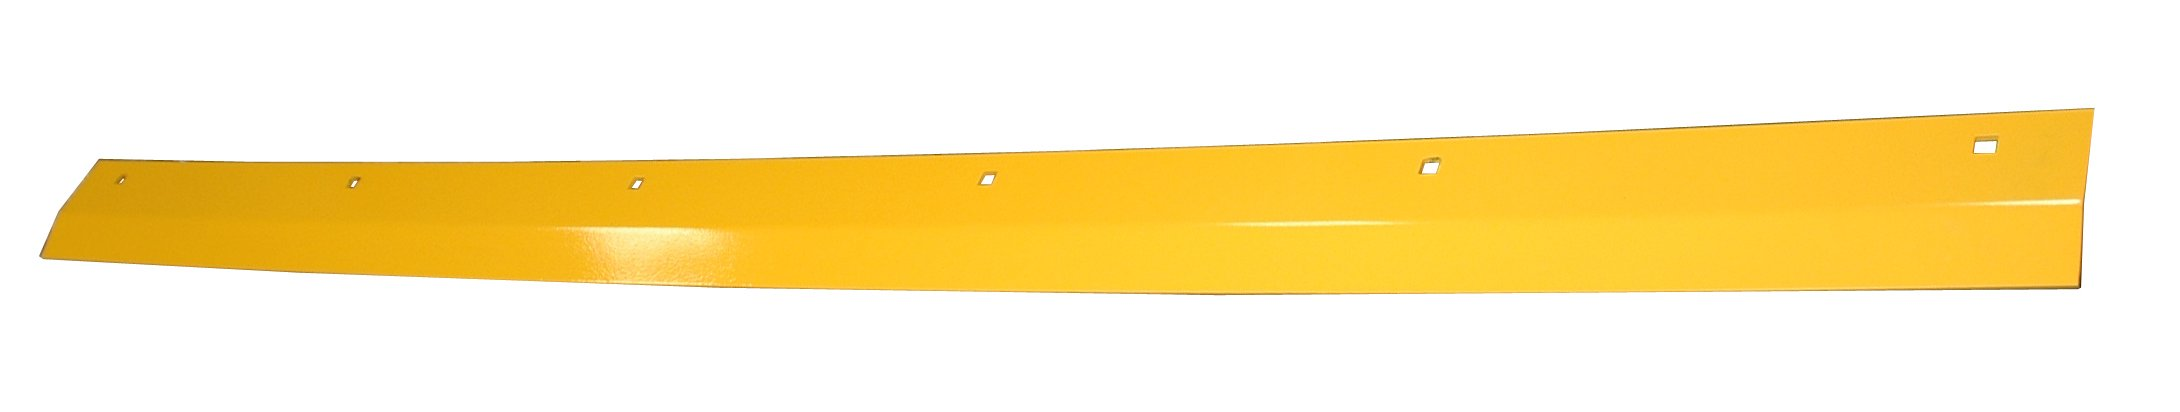 Meyer Products, LLC 8278 Home Plow Steel Cutting Edge Kit